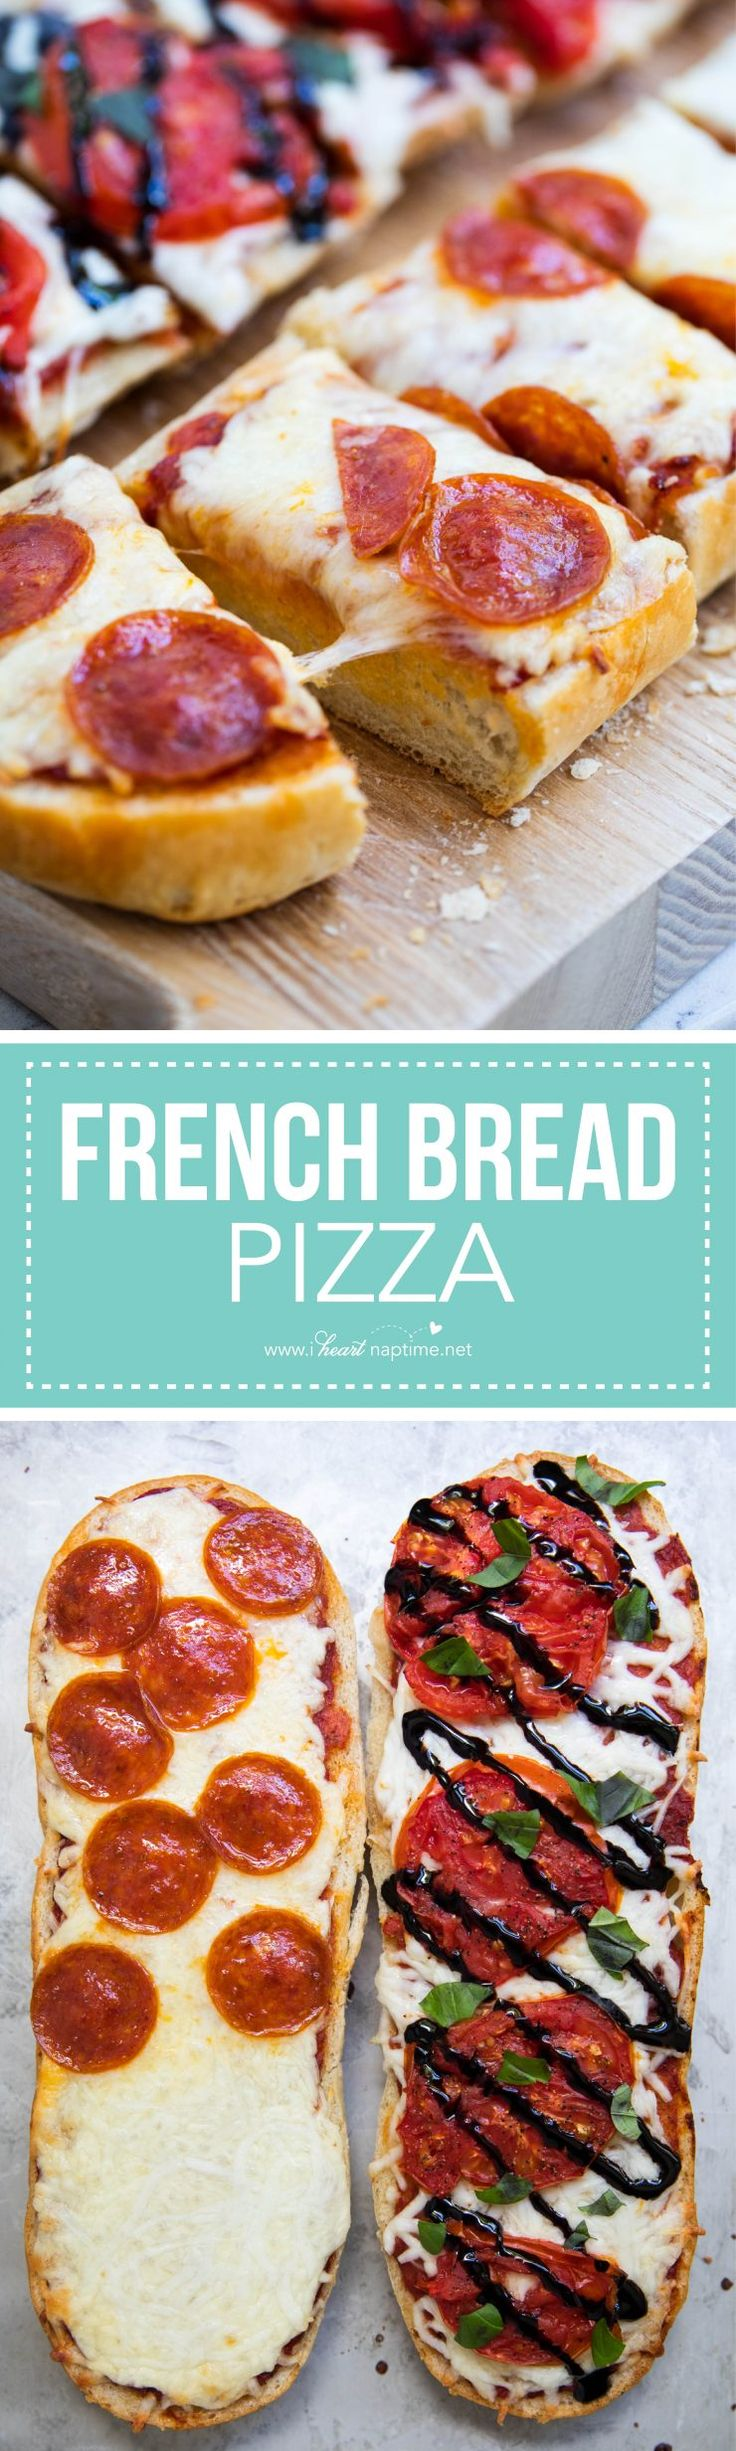 314 best Pizza Recipes images on Pinterest   Baking, Business ideas ...